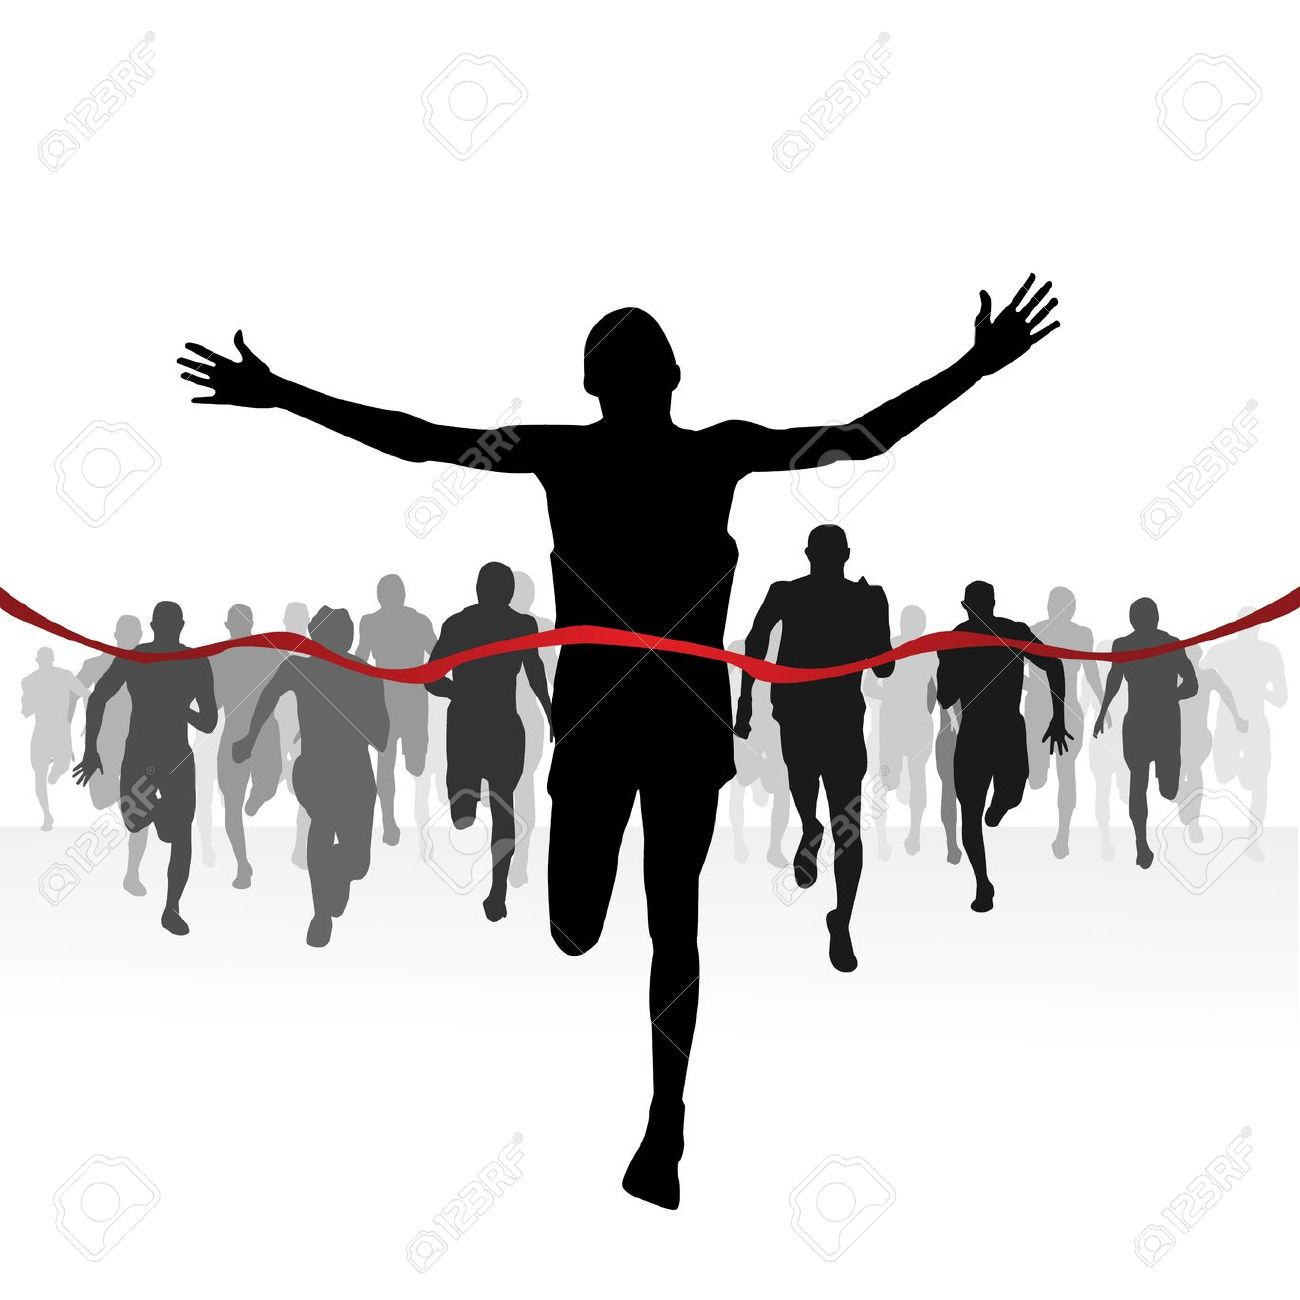 Running finish line clipart.